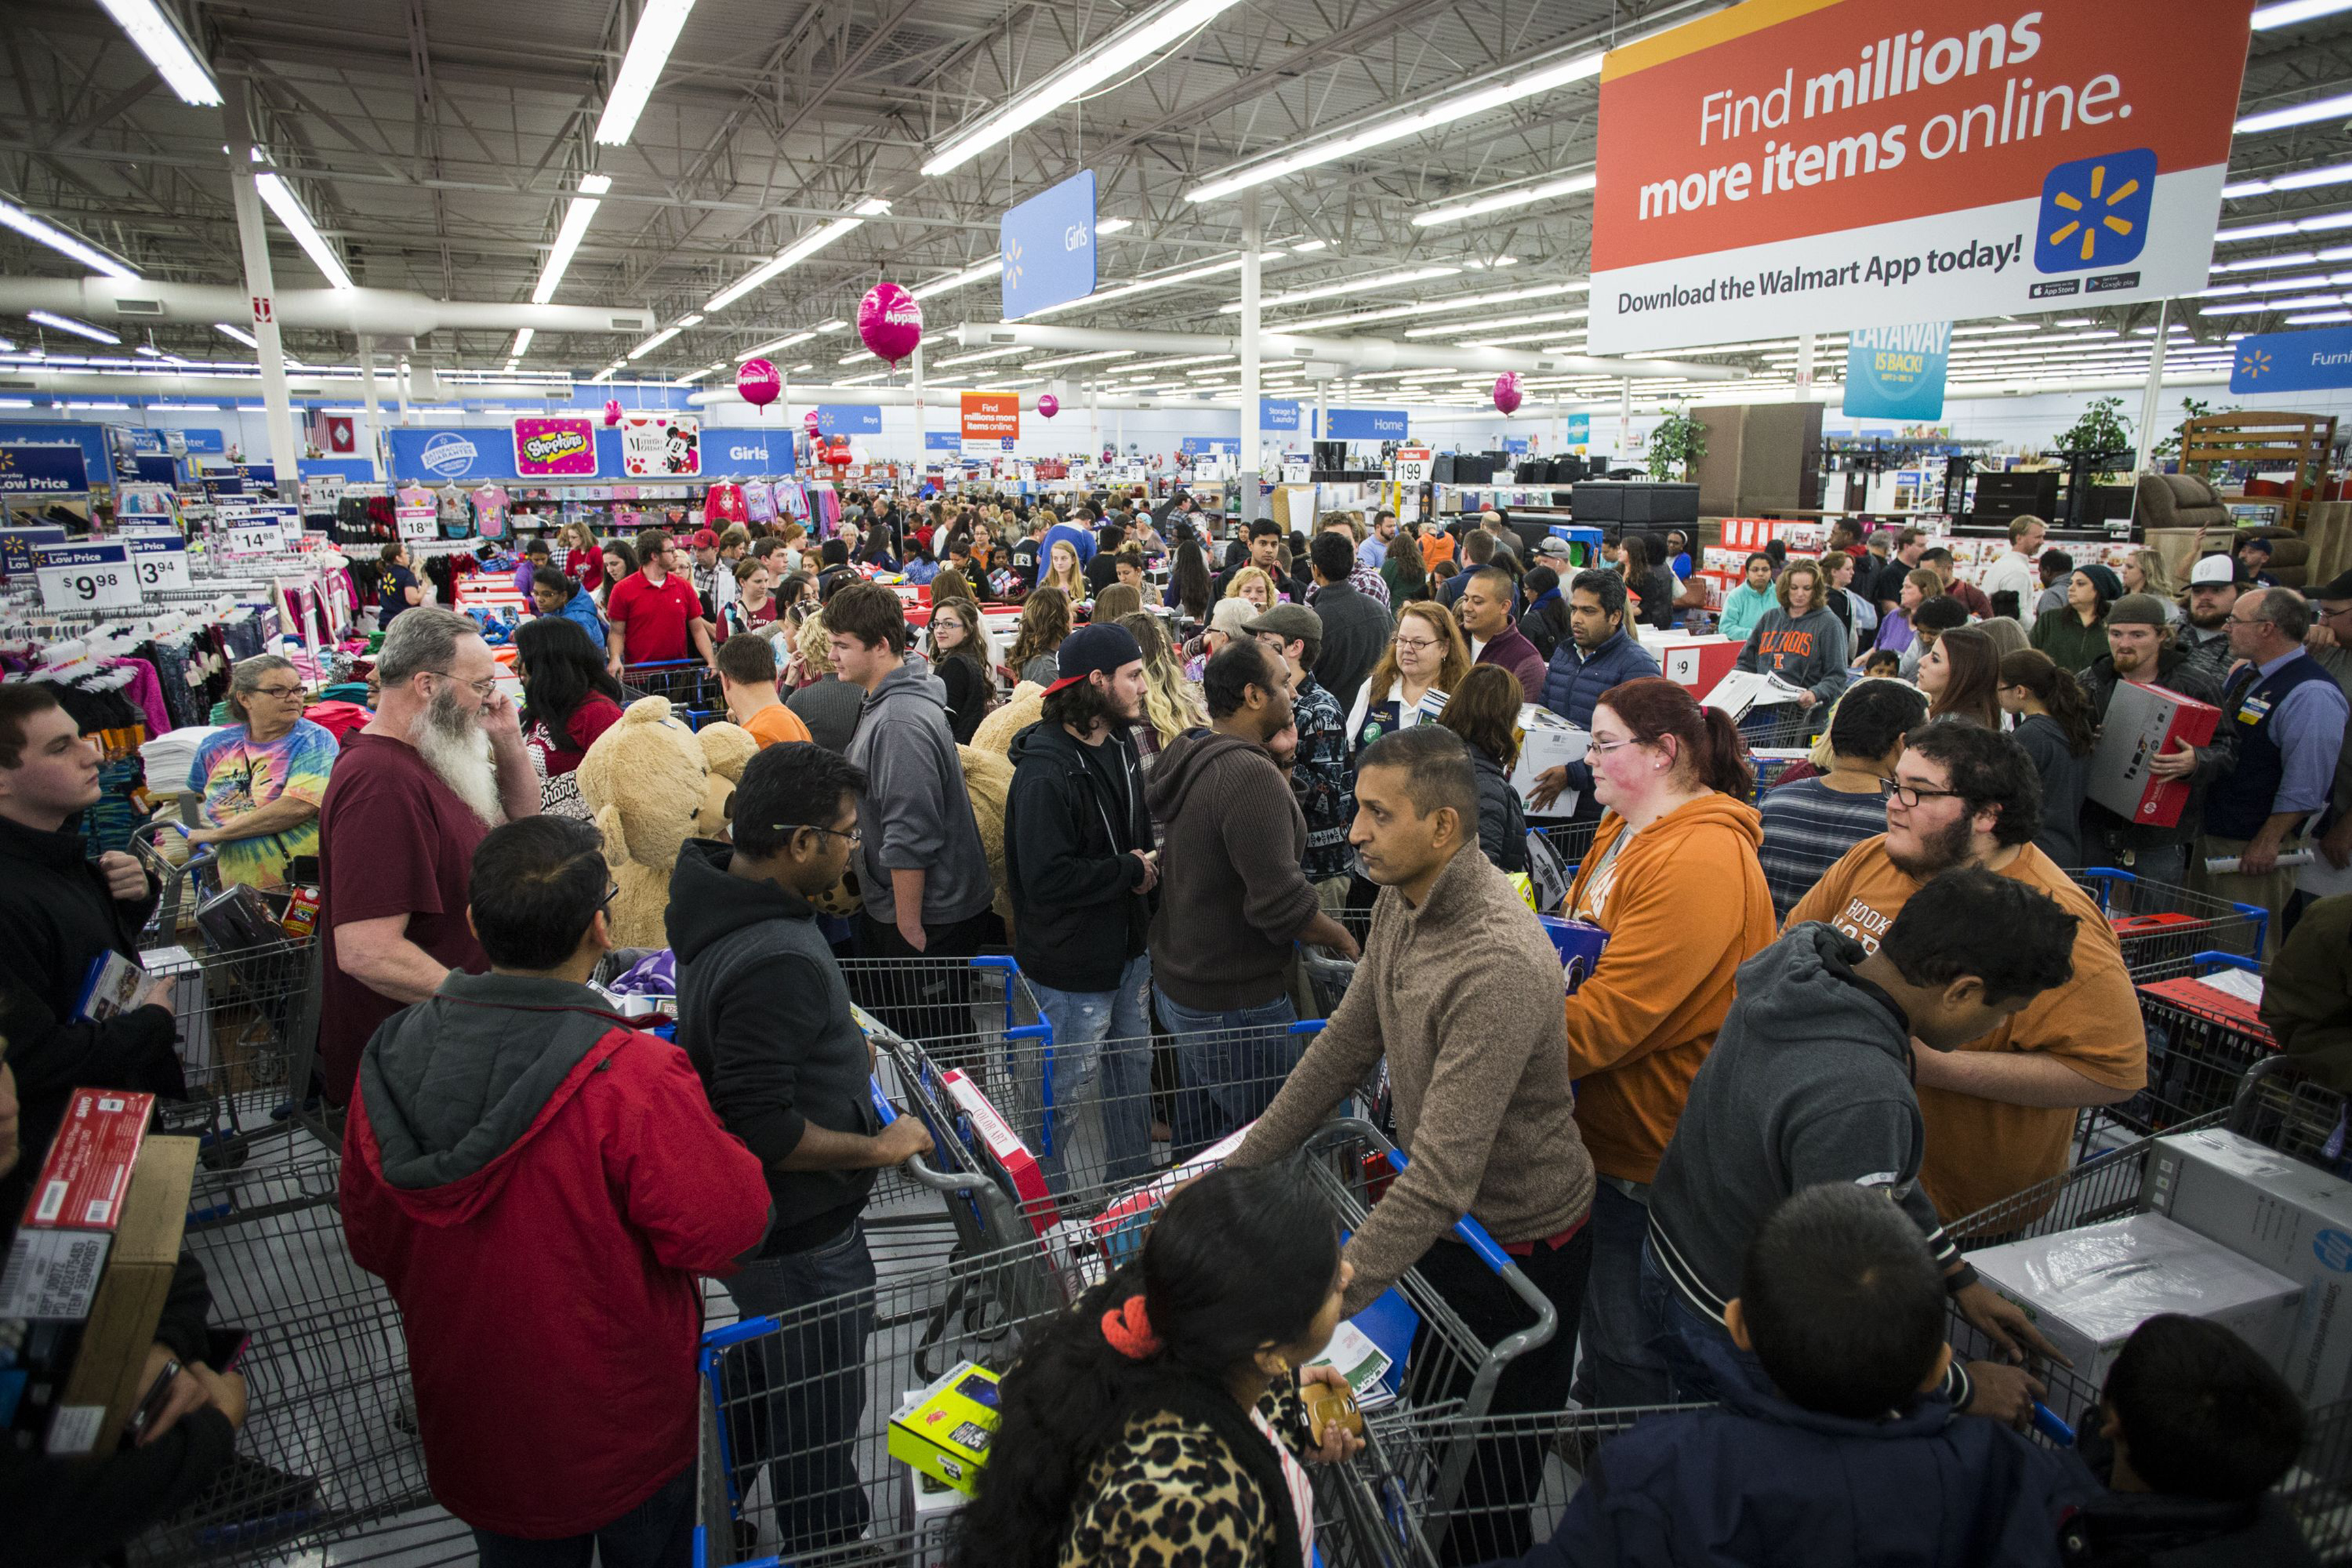 The biggest volume day of the year for retailers is the last Saturday before Christmas.